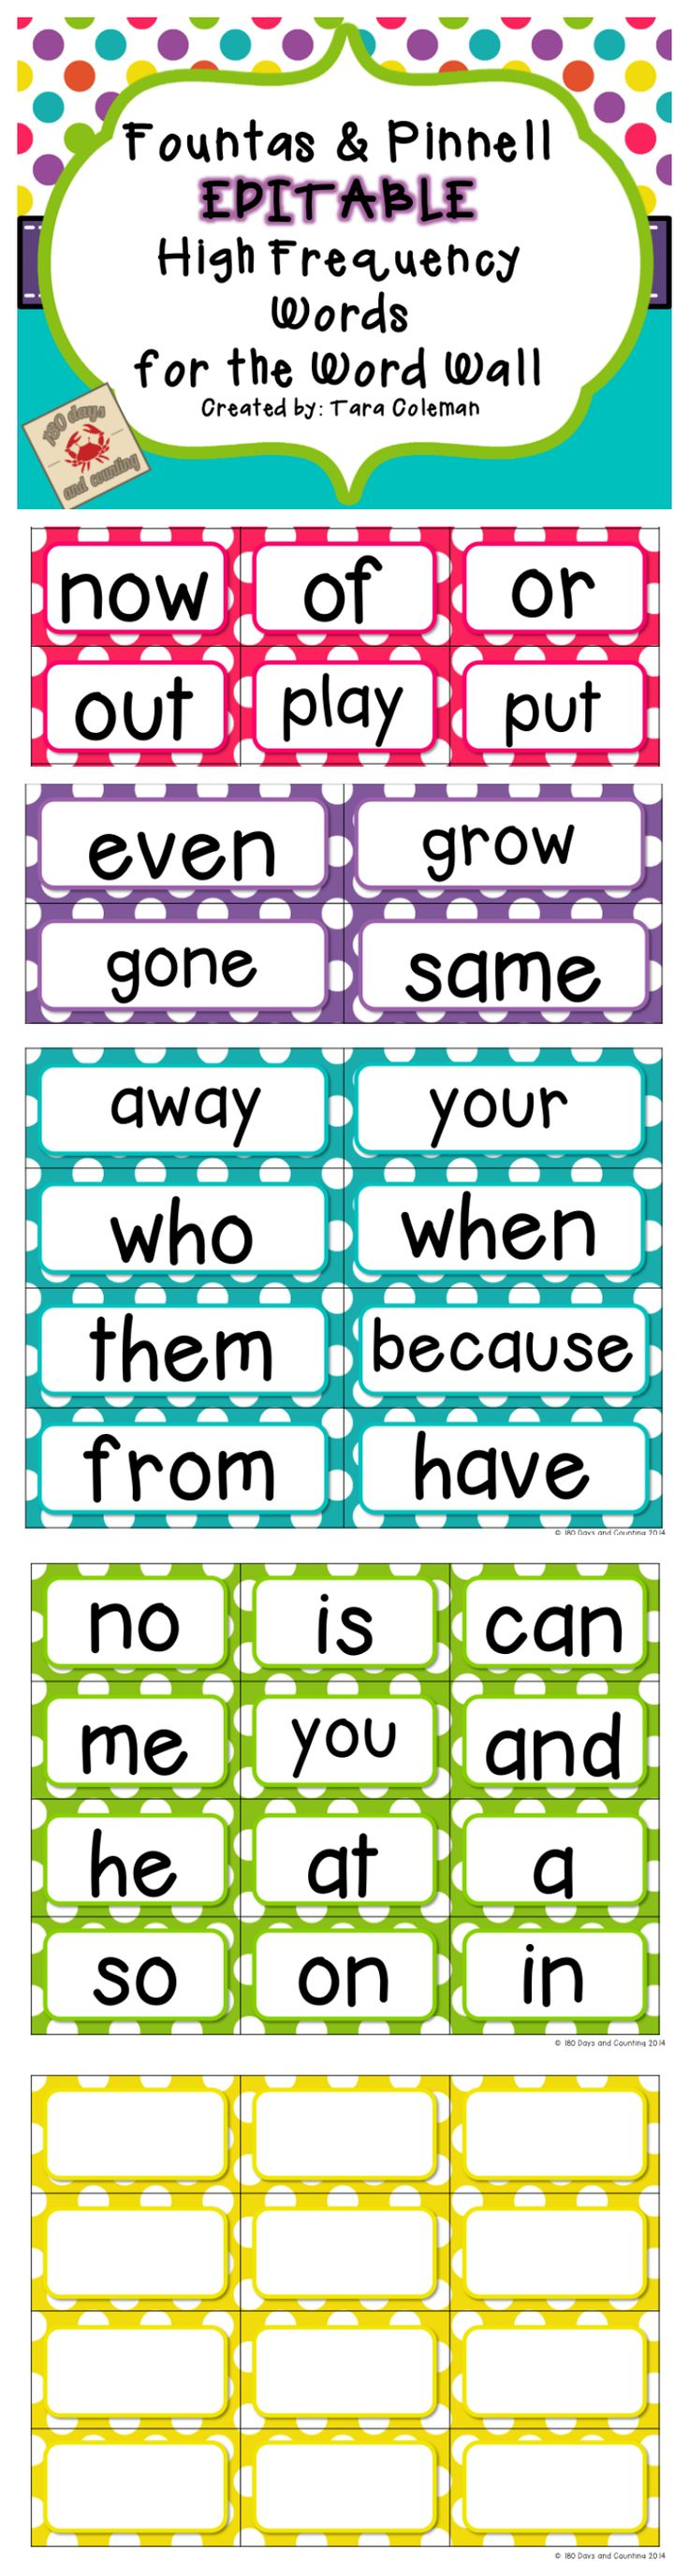 Fountas & Pinnell Editable Word Wall Cards.  Sets of 25, 50, 100, and 200 words...color coordinated!  Cute, polka-dot design.